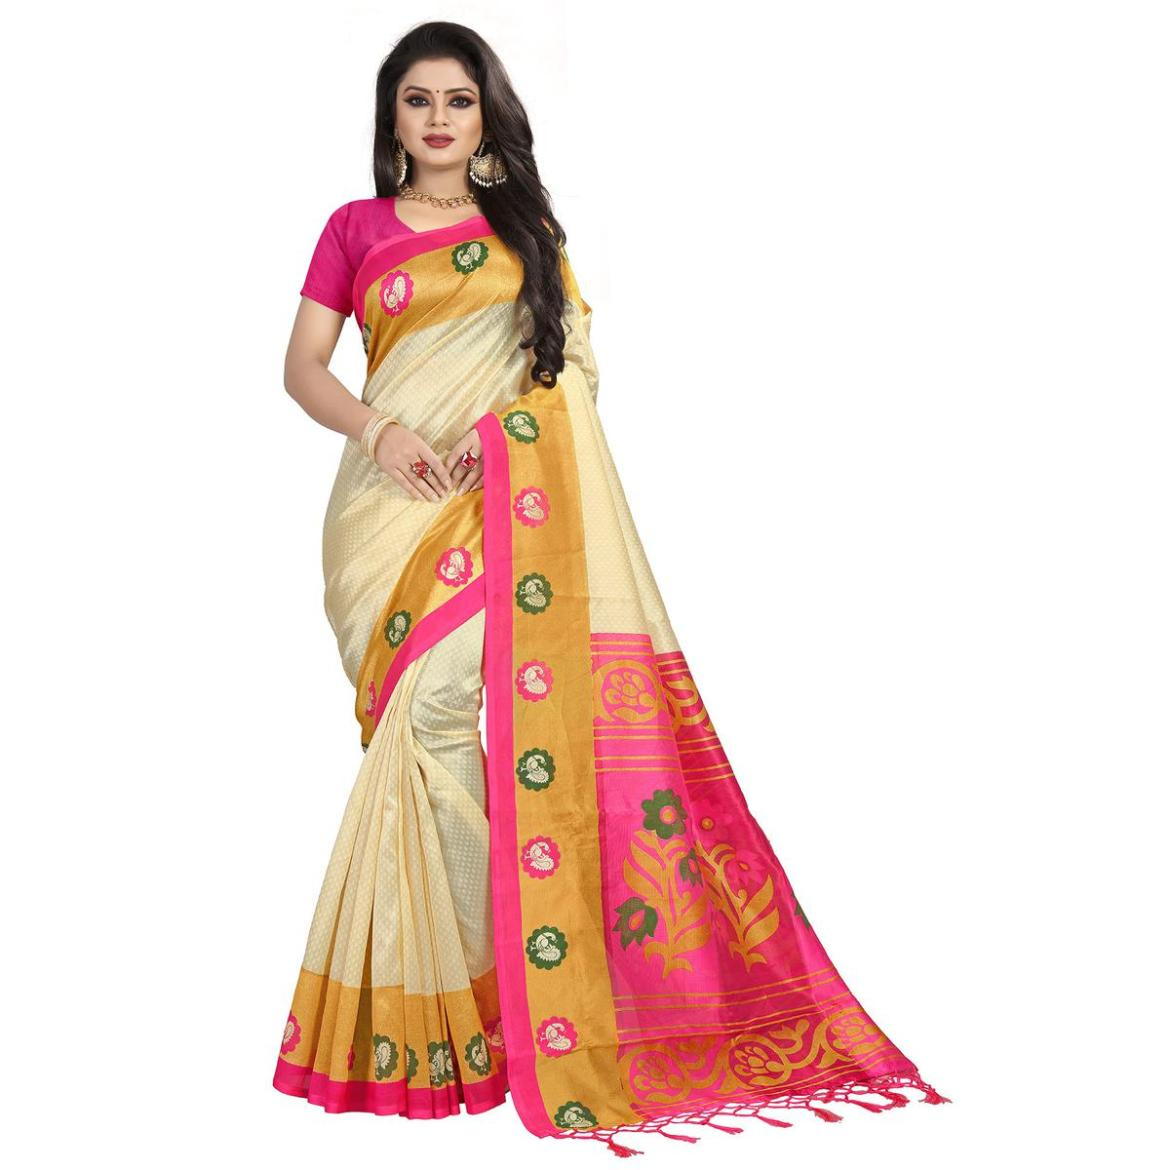 Engrossing Cream-Pink Colored Festive Wear Mysore Silk Saree With Tassels